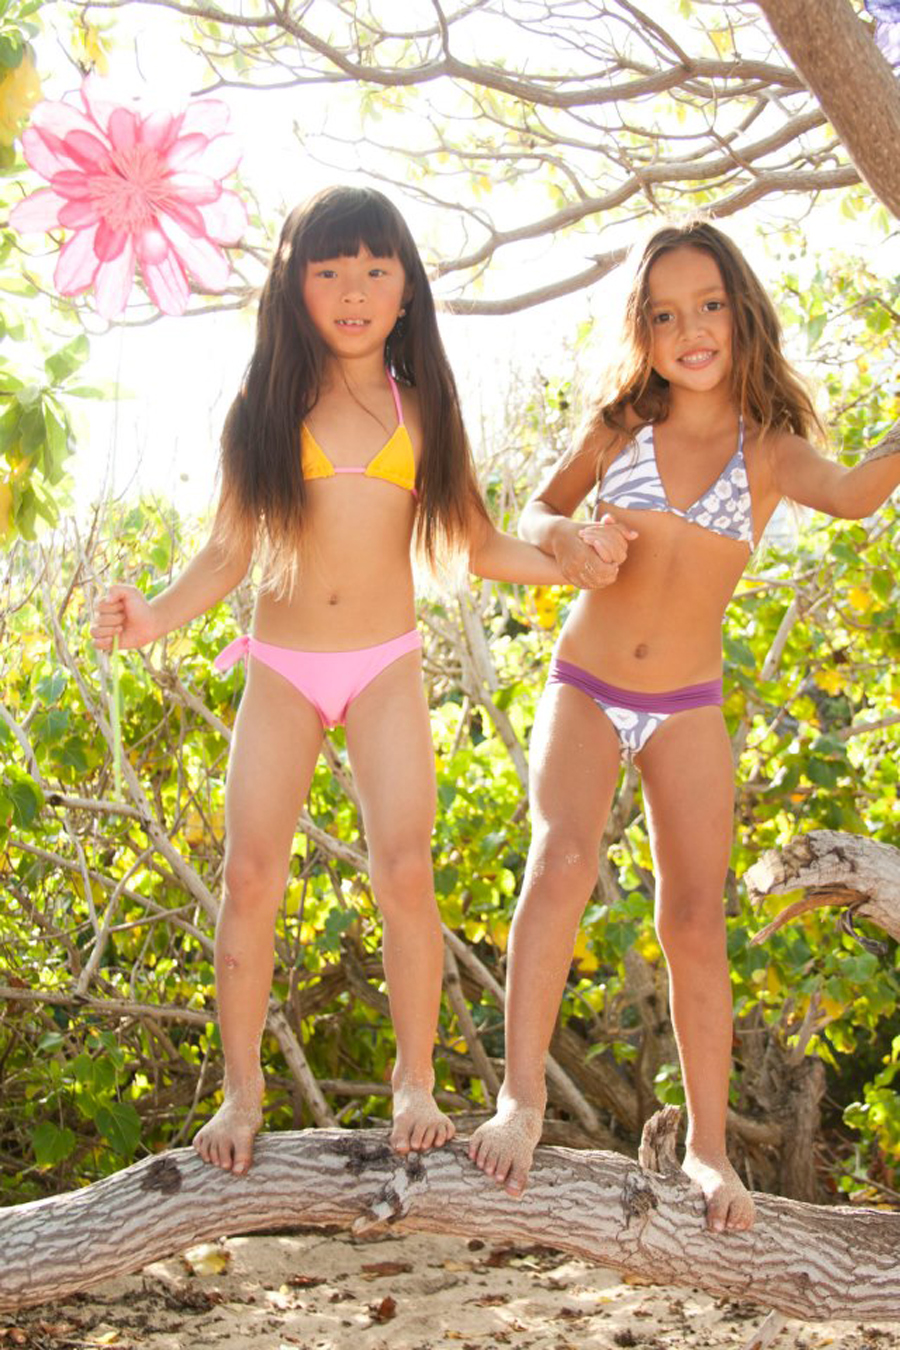 Too young teen small bikinis.